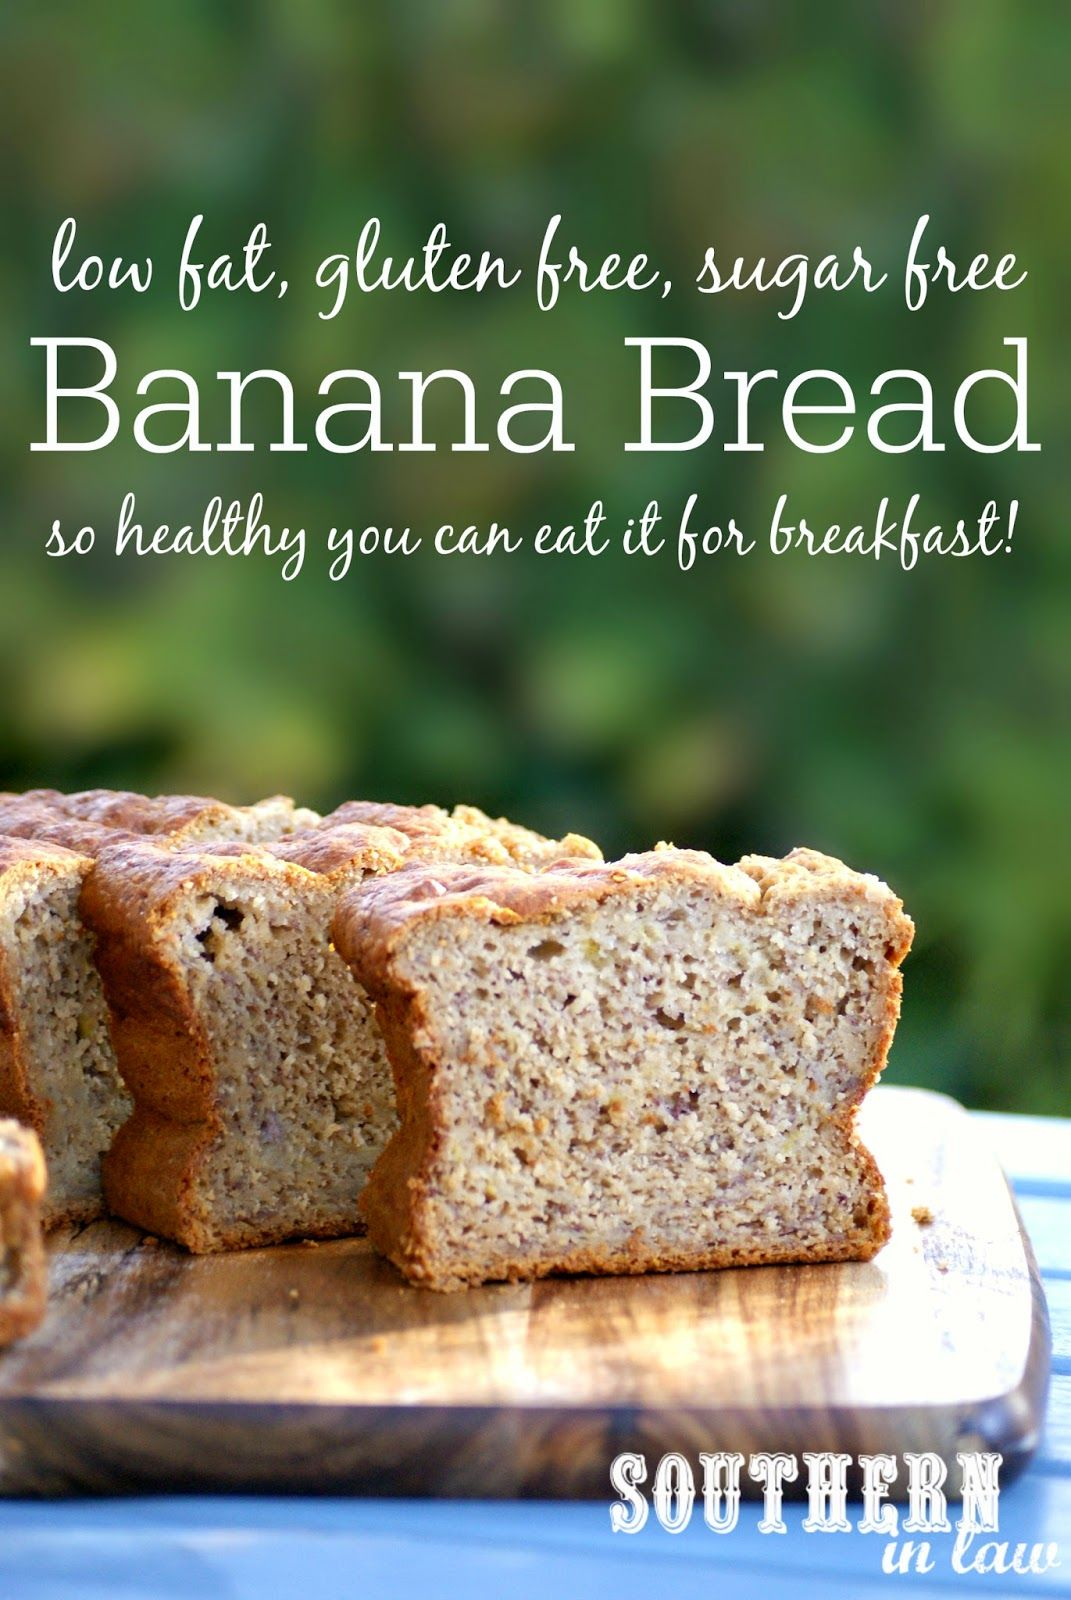 Recipe the best healthy banana bread low fat banana bread low fat banana bread recipe low fat gluten free low calories sugar free healthy clean eating friendly breakfast banana bread forumfinder Gallery